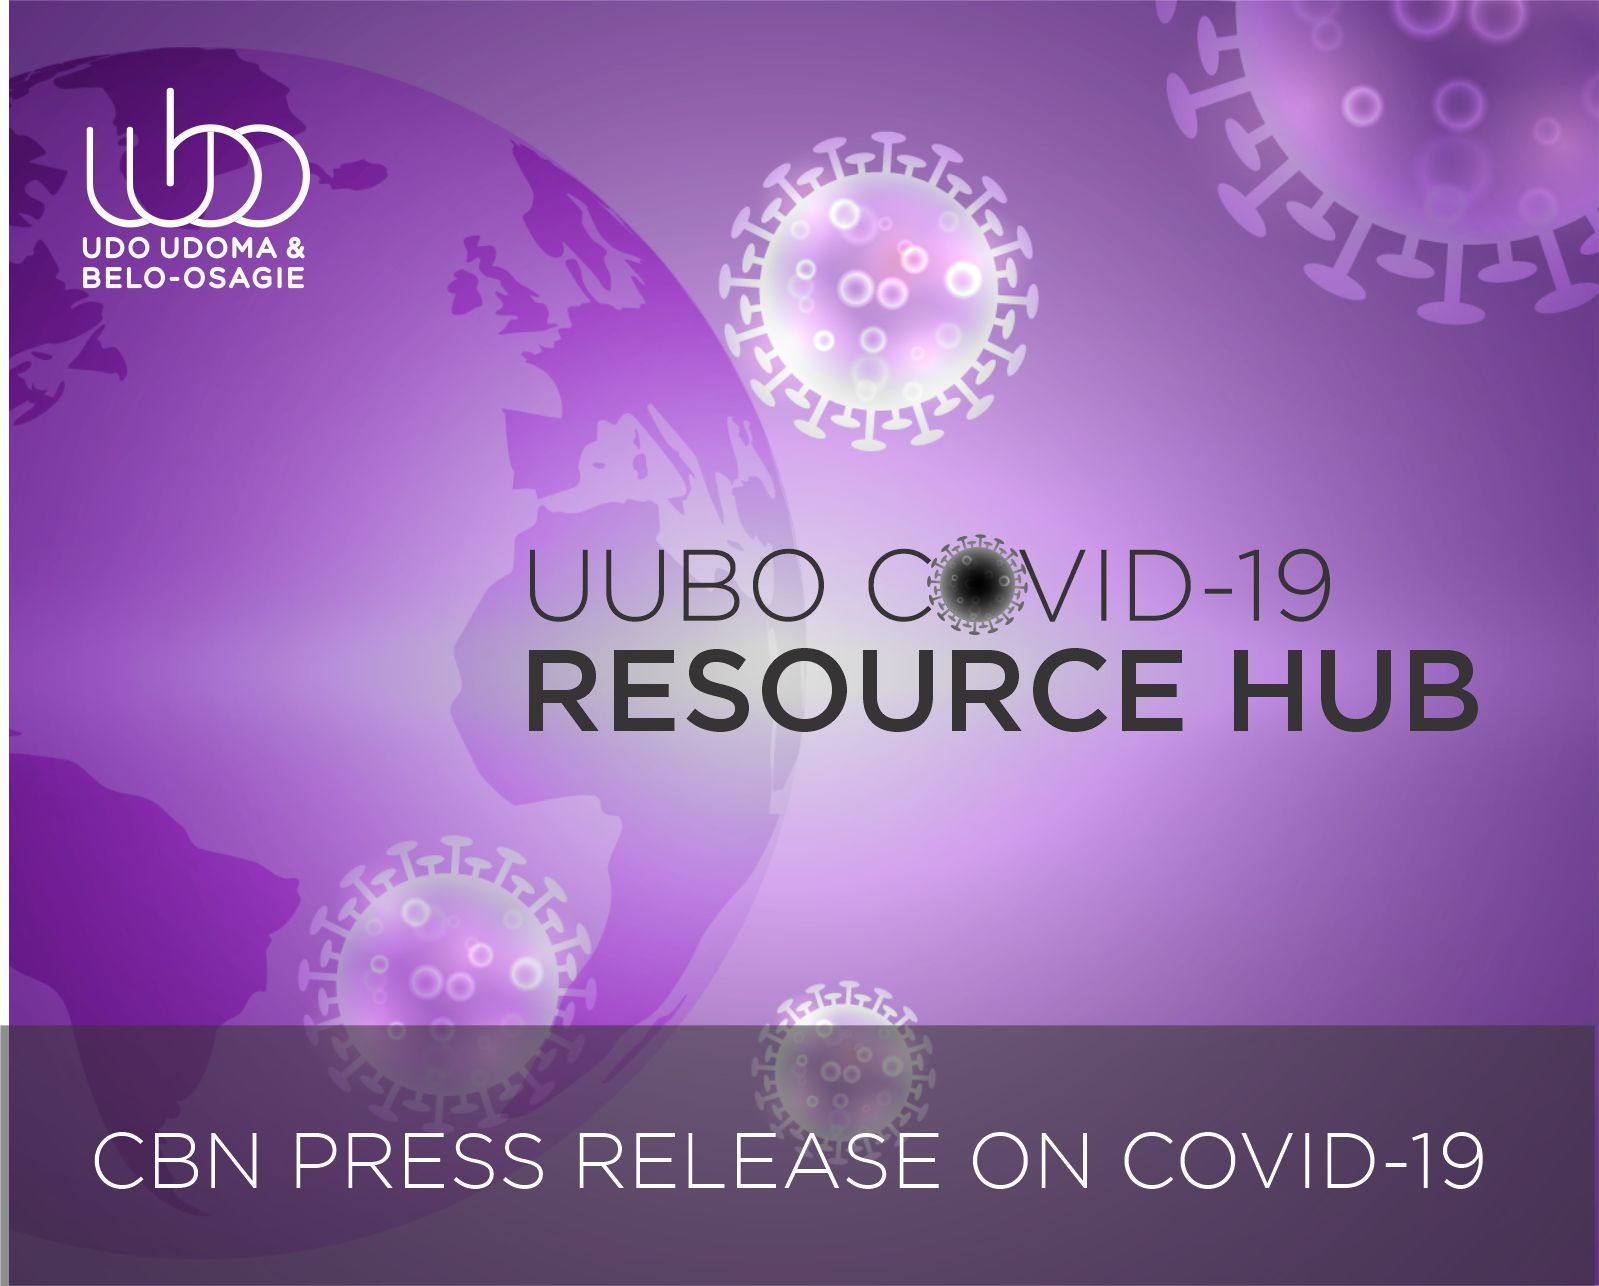 CBN PRESS RELEASE ON COVID 19